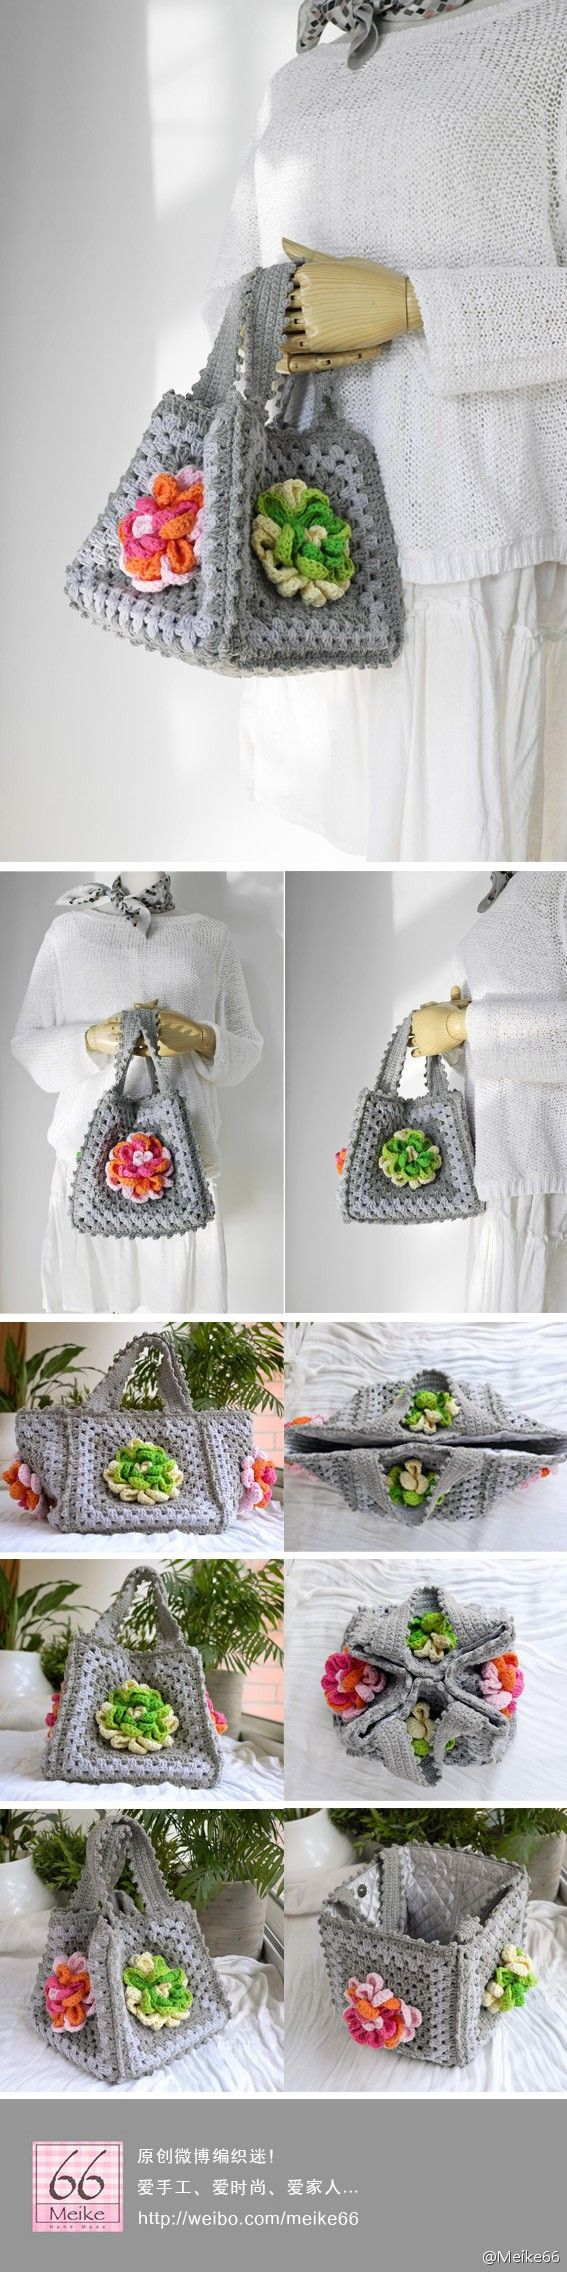 """#Crochet_Tutorial - """"Here's a very interesting way to construct a sweet bag from 5 granny squares! If the flowers are over-the-top for you, try this with colorful grannies without the flowers."""" Enjoy from #KnittingGuru"""